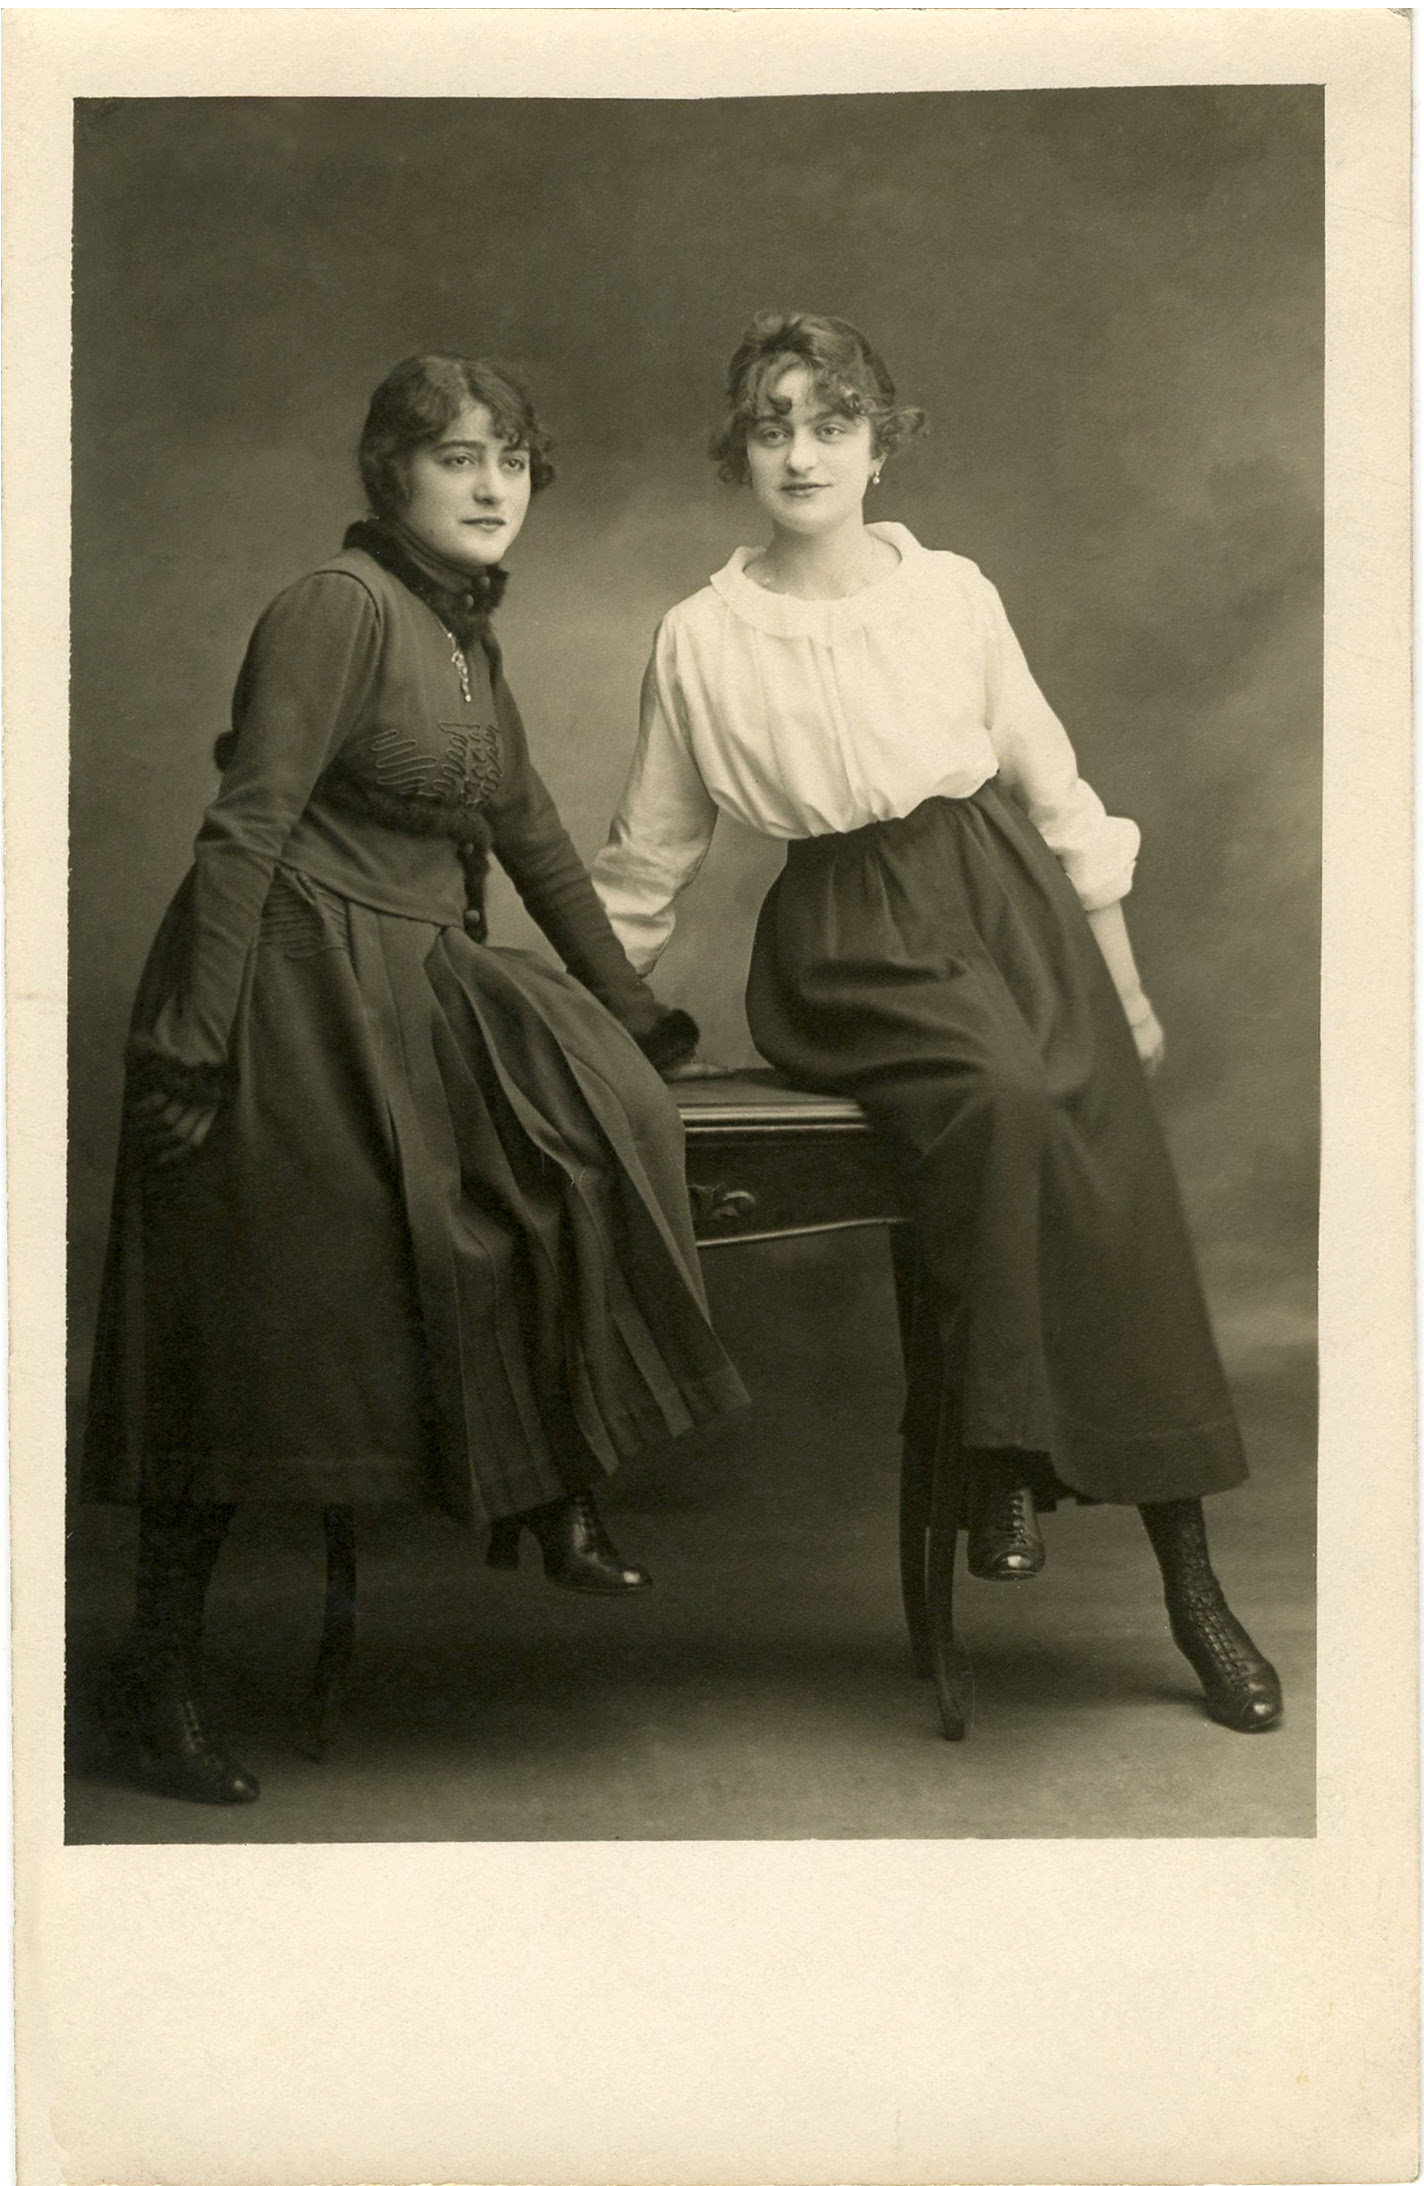 http://thegraphicsfairy.com/wp-content/uploads/2013/08/Old-Photograph-Sisters-GraphicsFairy.jpg